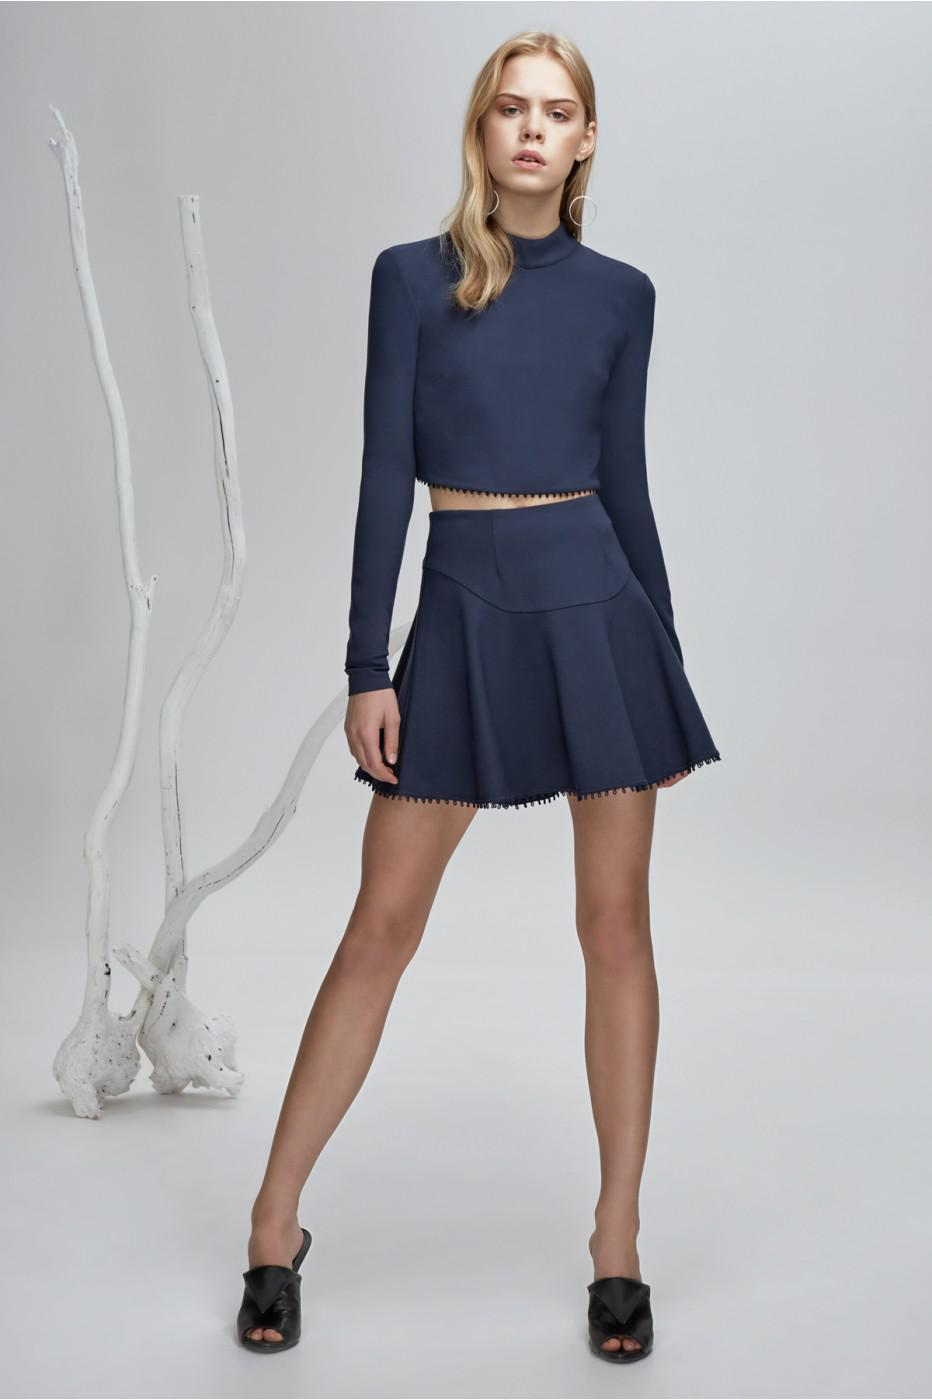 d8861d1146 Lyst - Finders Keepers Aspects Mini Skirt in Blue